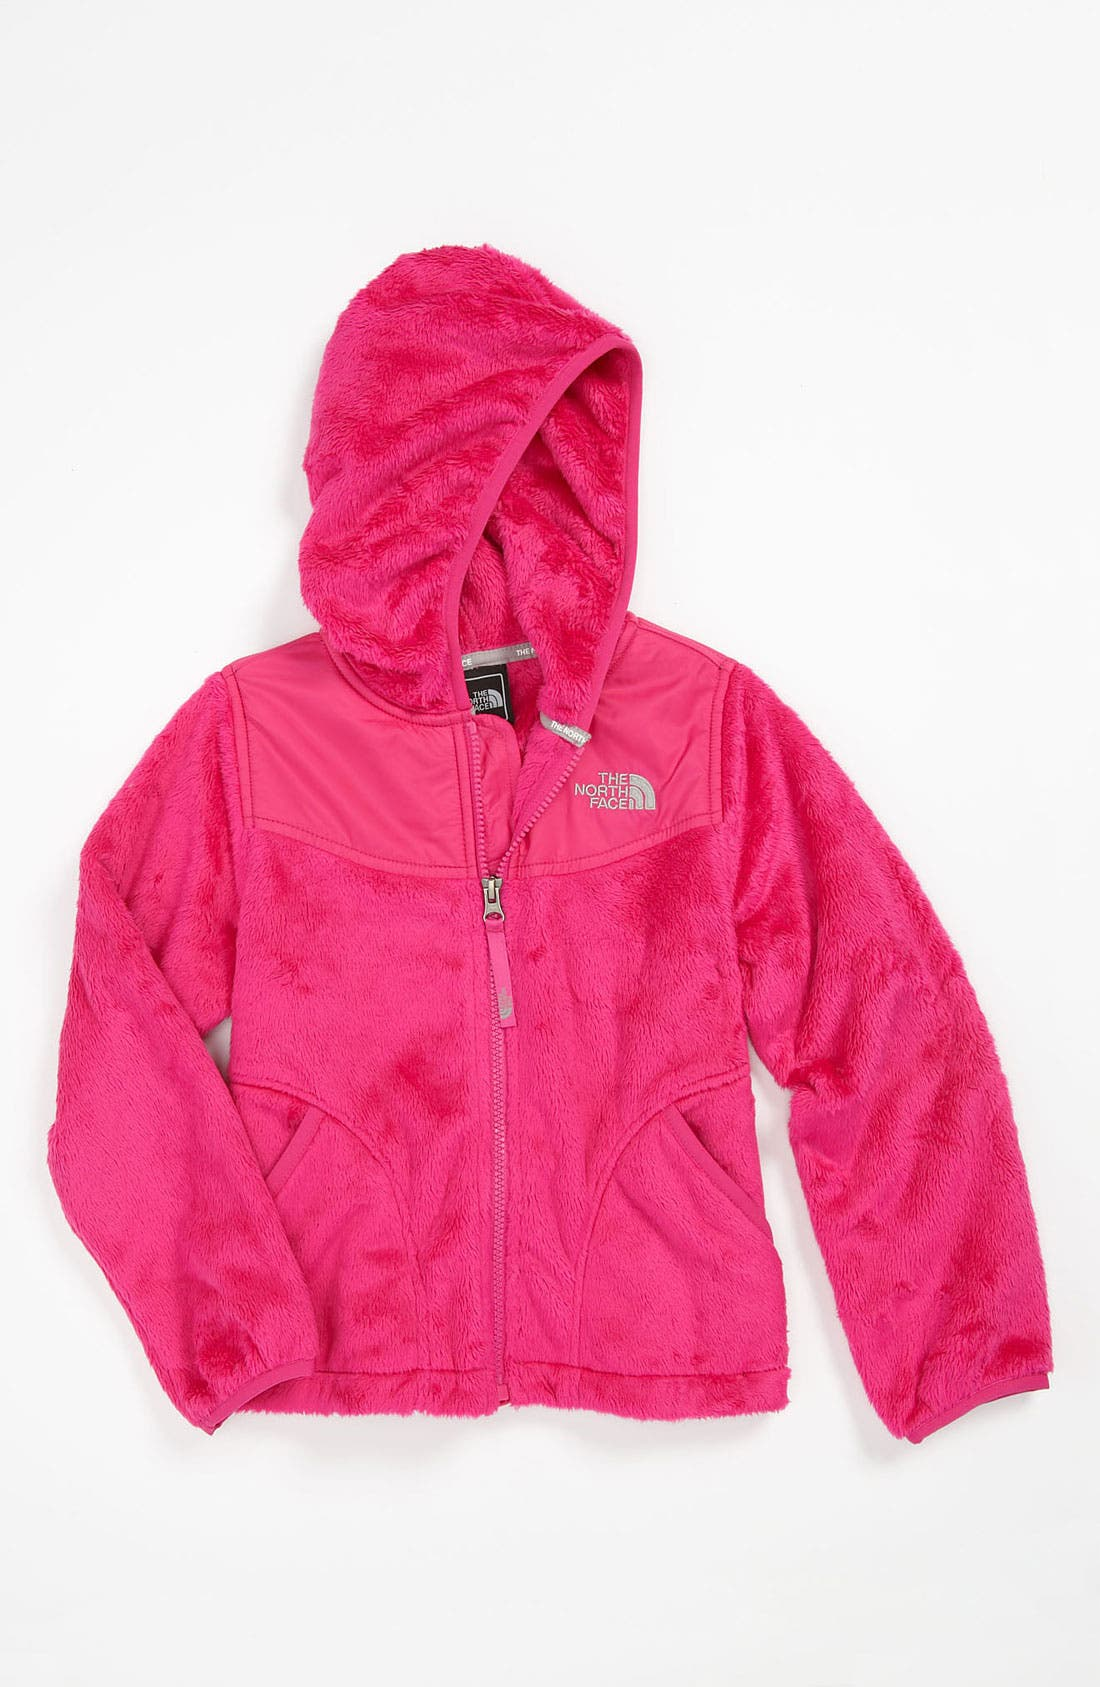 Main Image - The North Face 'Oso' Plush Fleece Hooded Jacket (Big Girls)